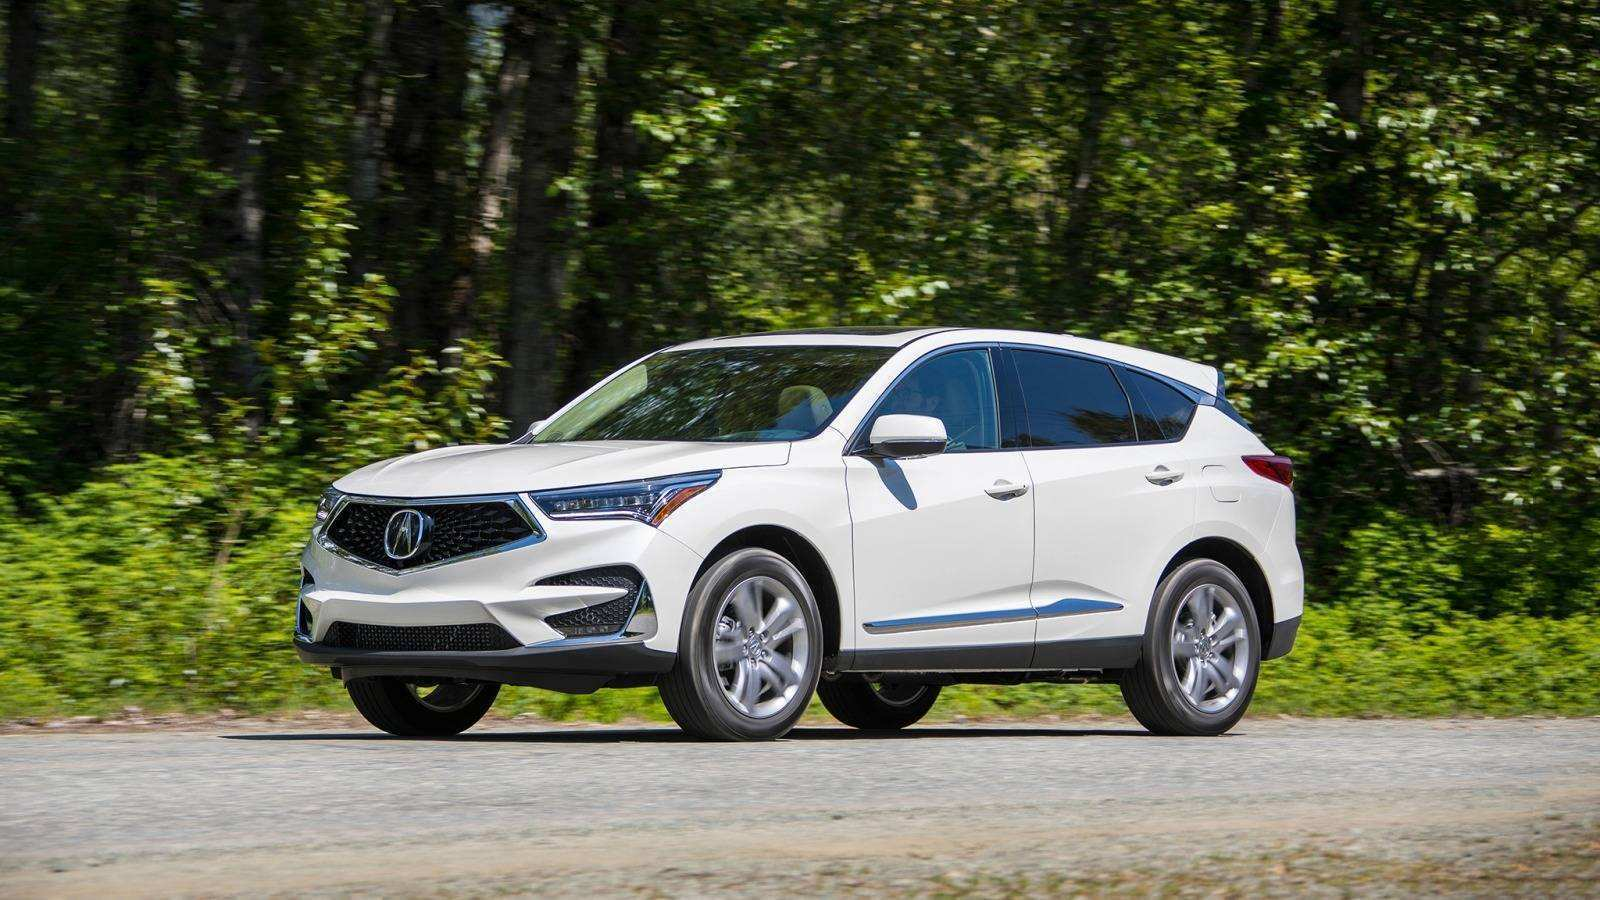 95 All New 2019 Acura Mdx Rumors Redesign And Review